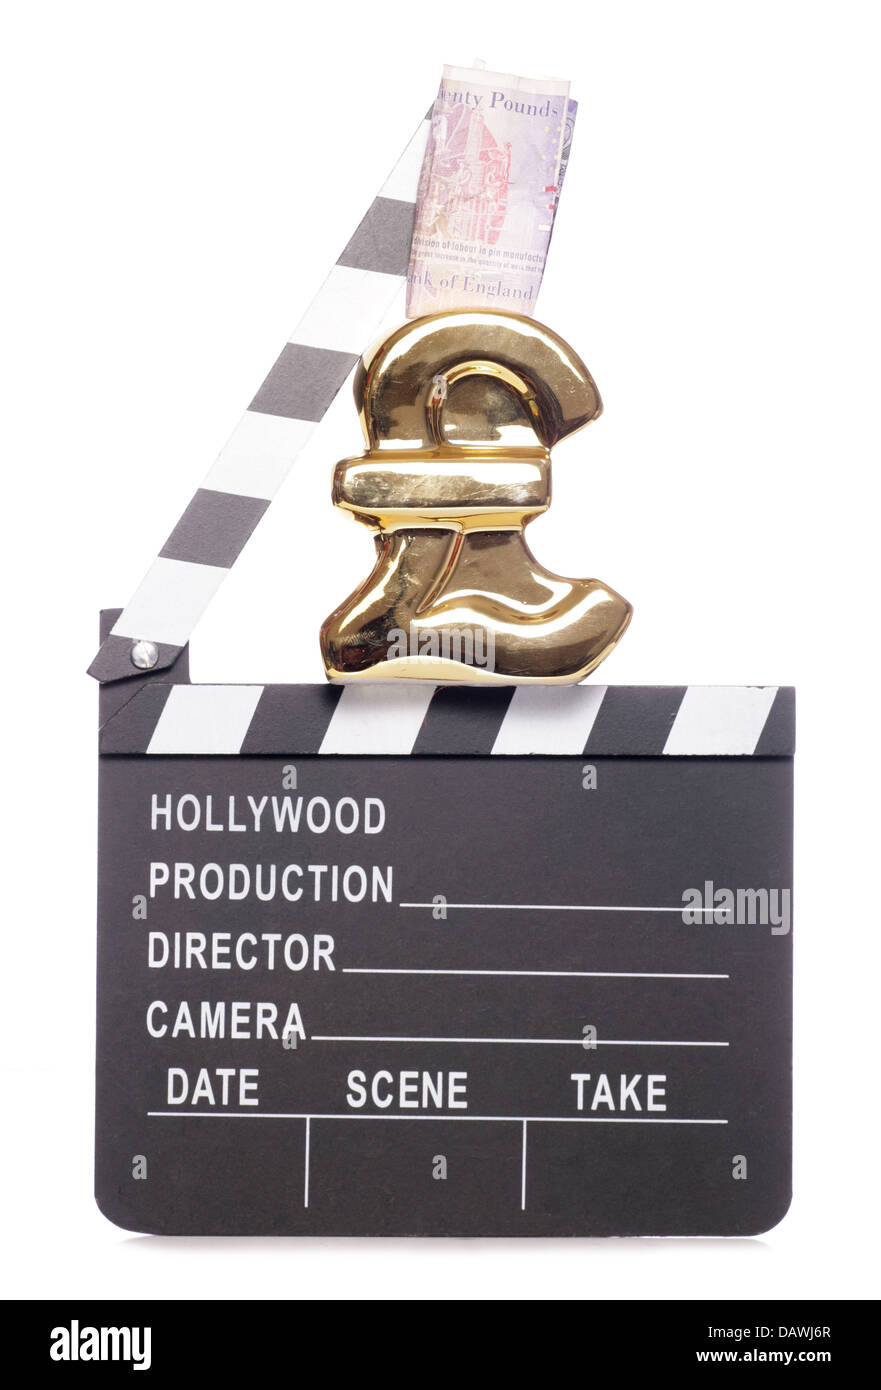 making money in the film industry cutout - Stock Image